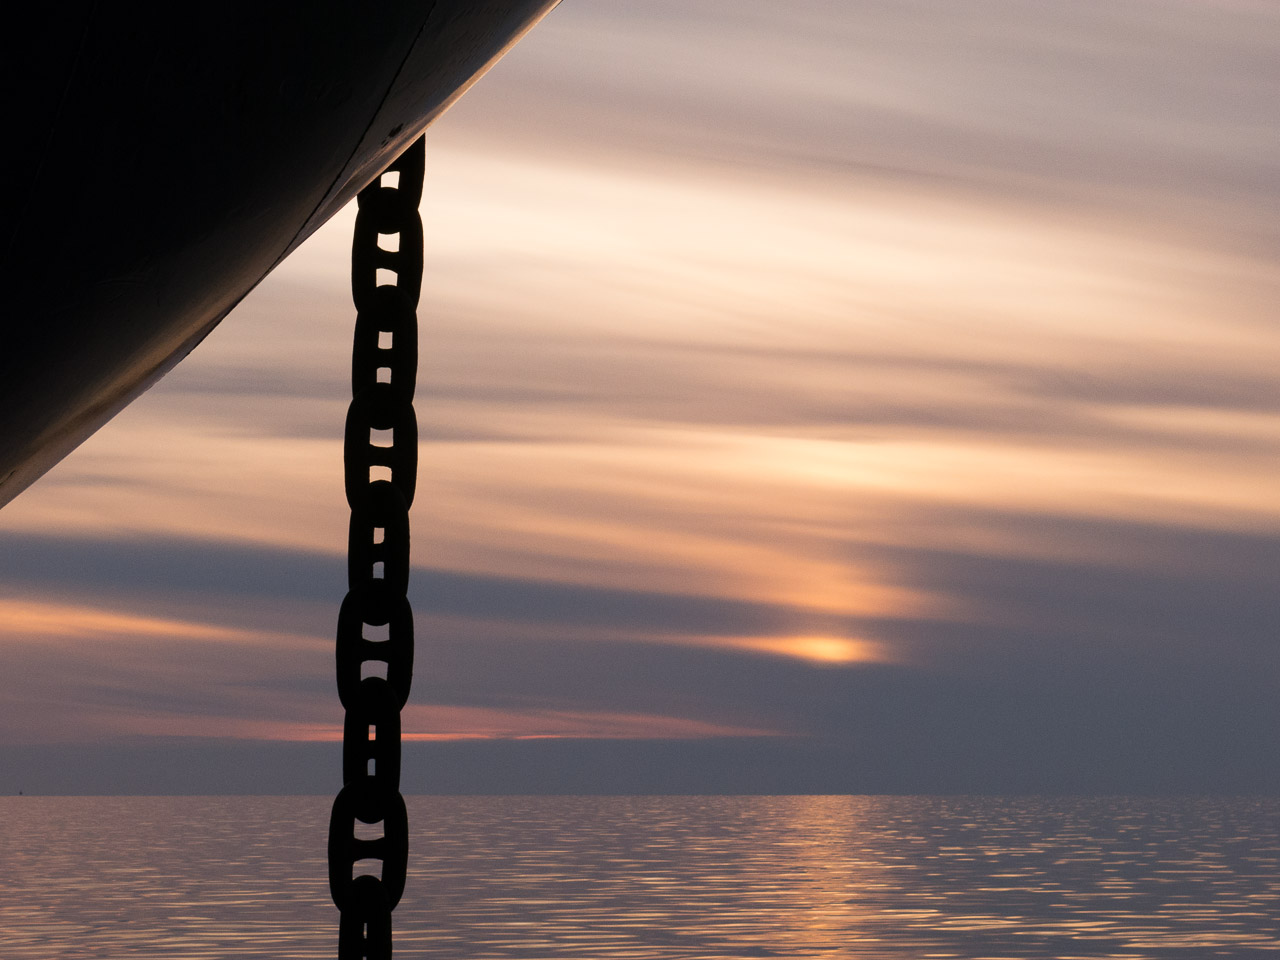 Barge Anchor Chain. Kotzebue Sound. Alaska.